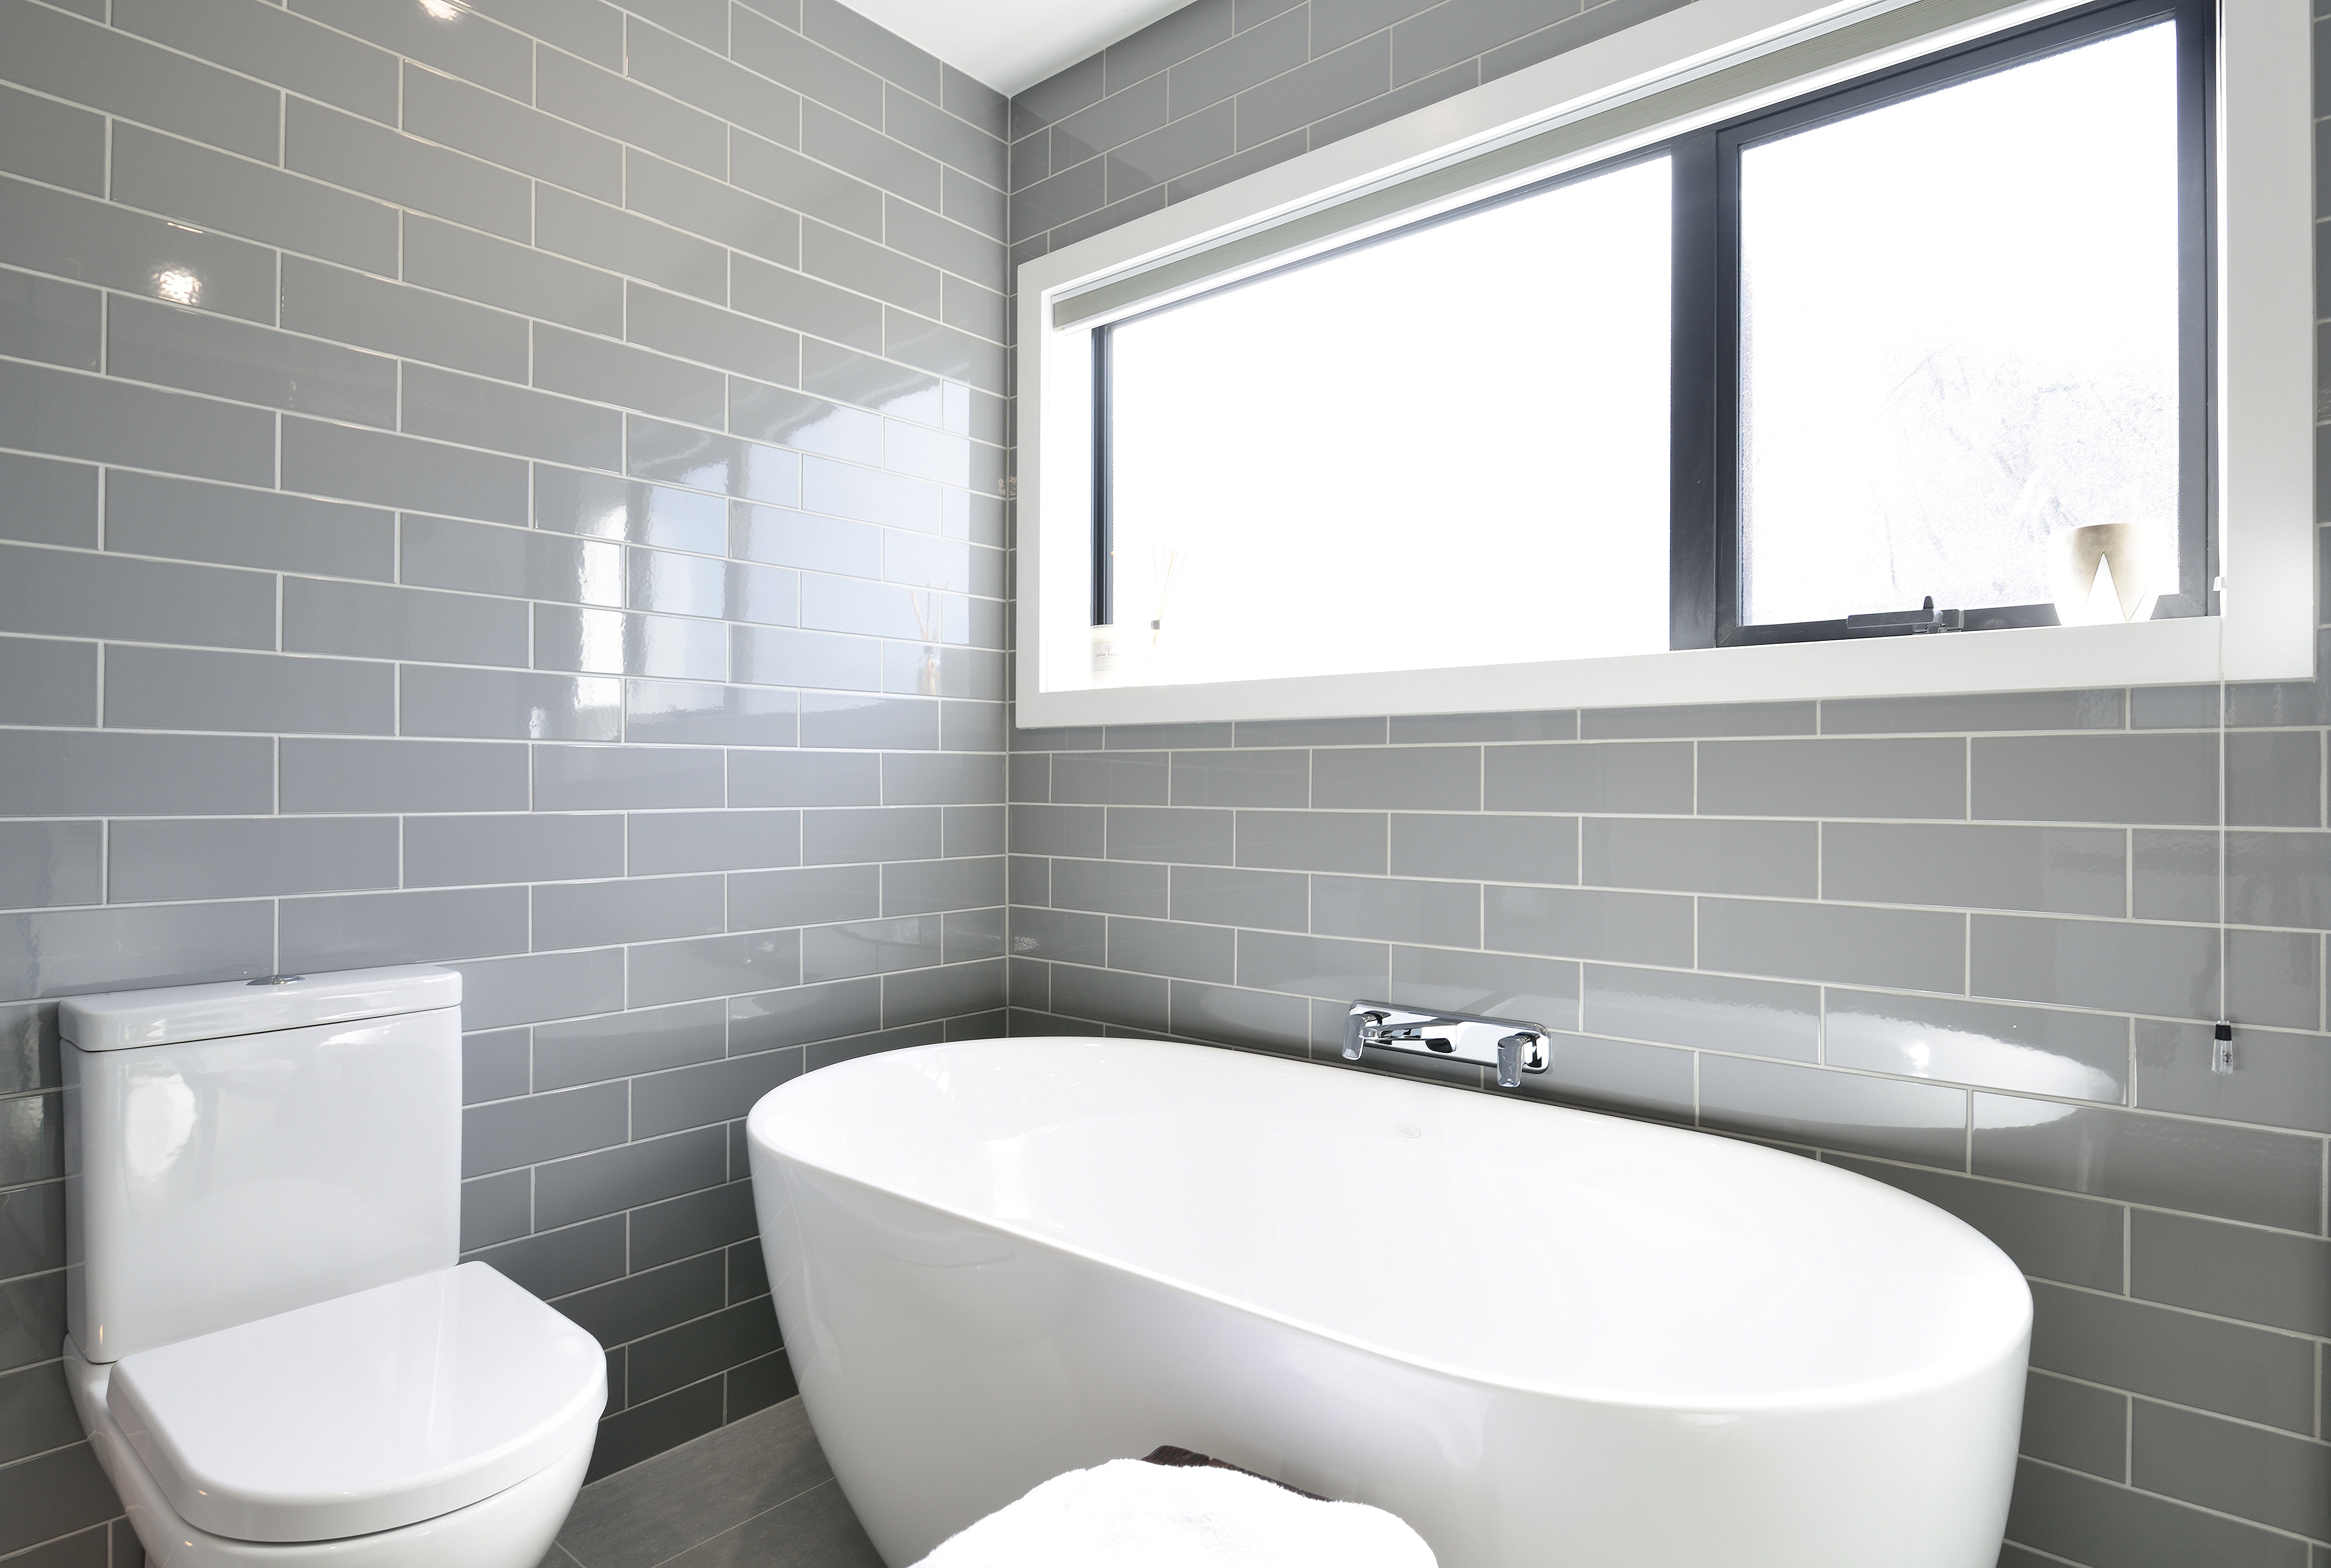 Bathroom Tiles Nz tile space & midas tiles are proud to supply the tiles to the